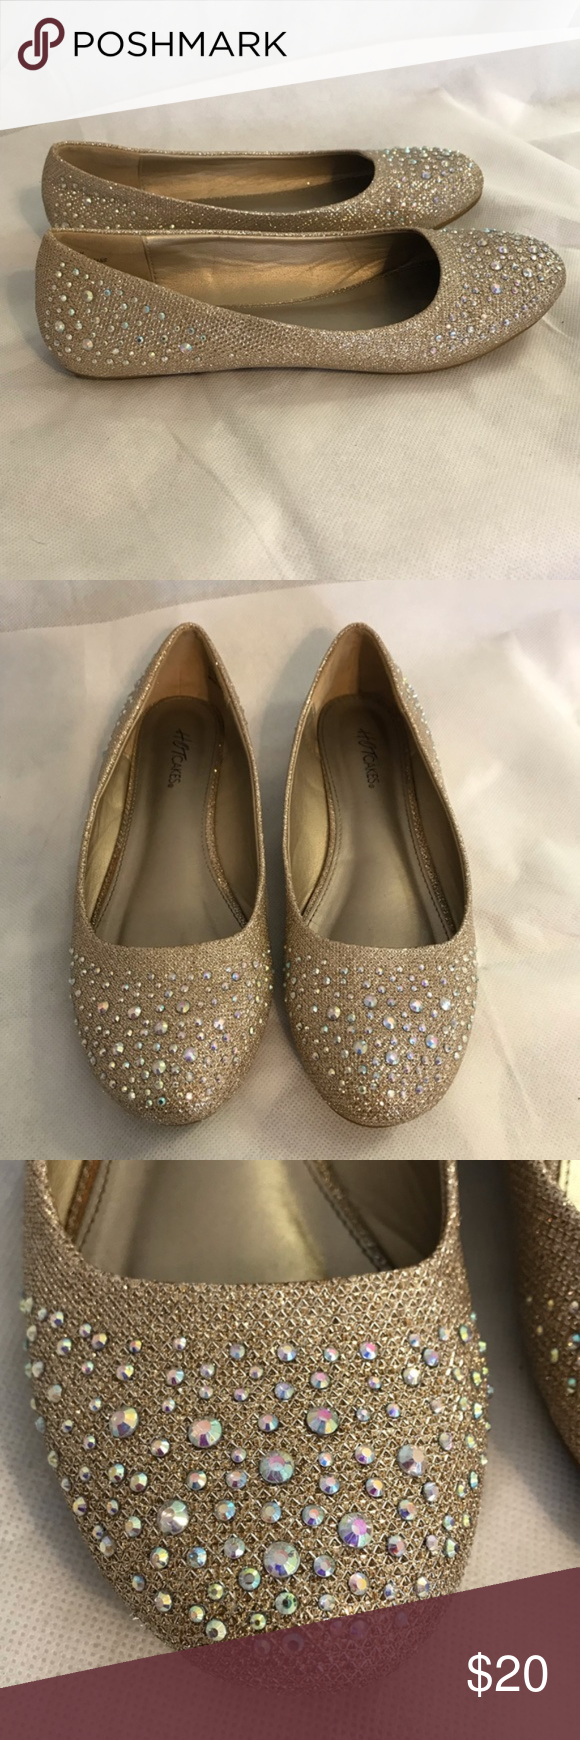 Hot Cakes Gold Rhinestone Formal Flats Shoes Hot Cakes Gold Rhinestone Formal Flats Shoes Size 8 Man made materials Worn once #1199 Hot Cakes Shoes Flats & Loafers